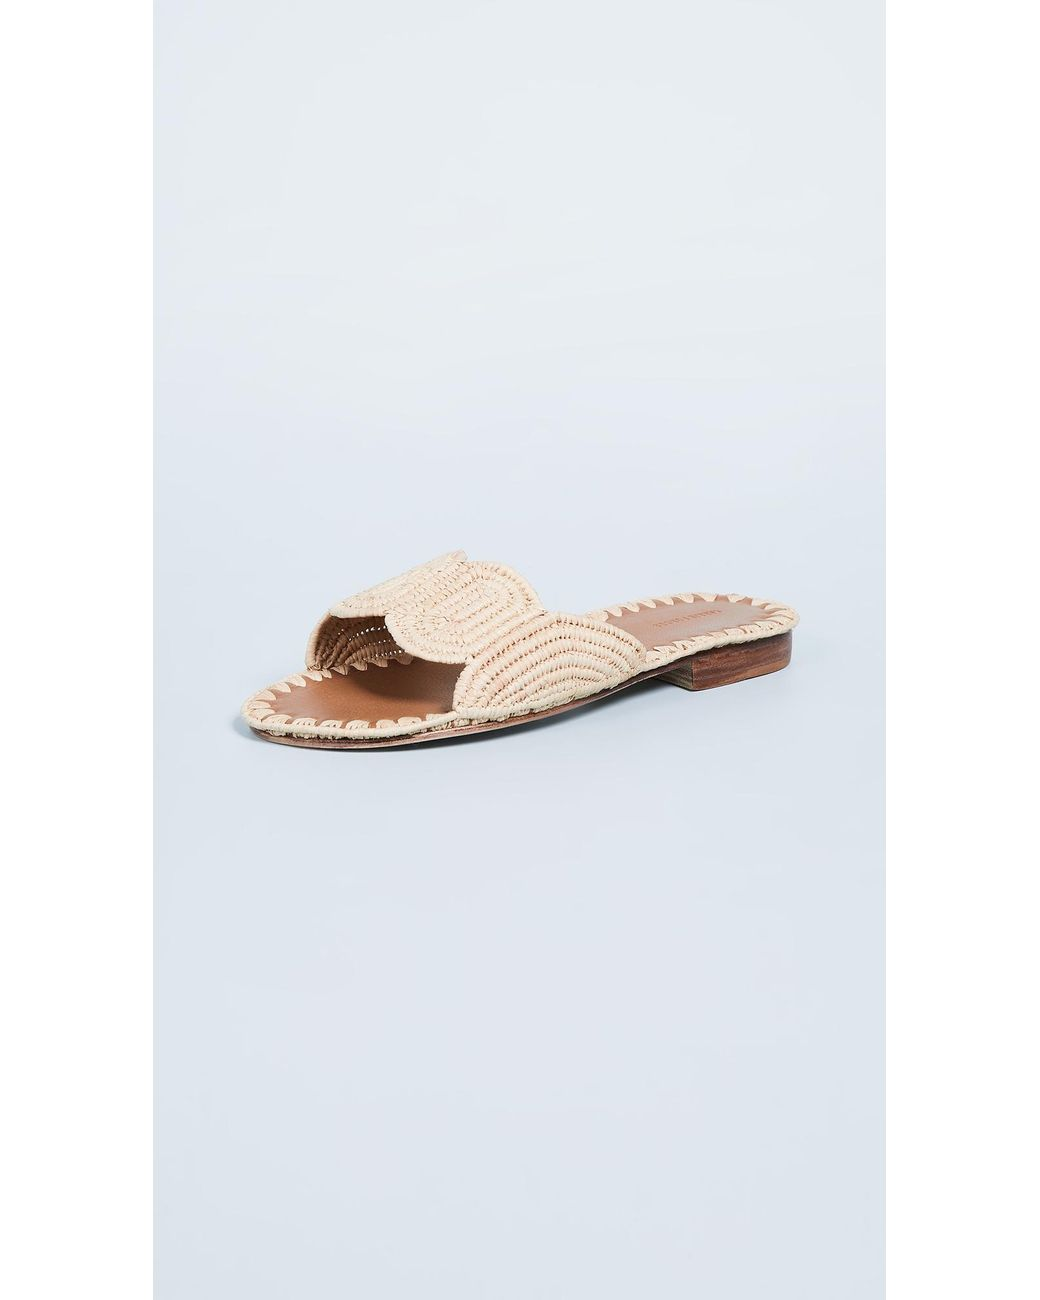 7597bfbded75 Lyst - Carrie Forbes Naima Slides in Natural